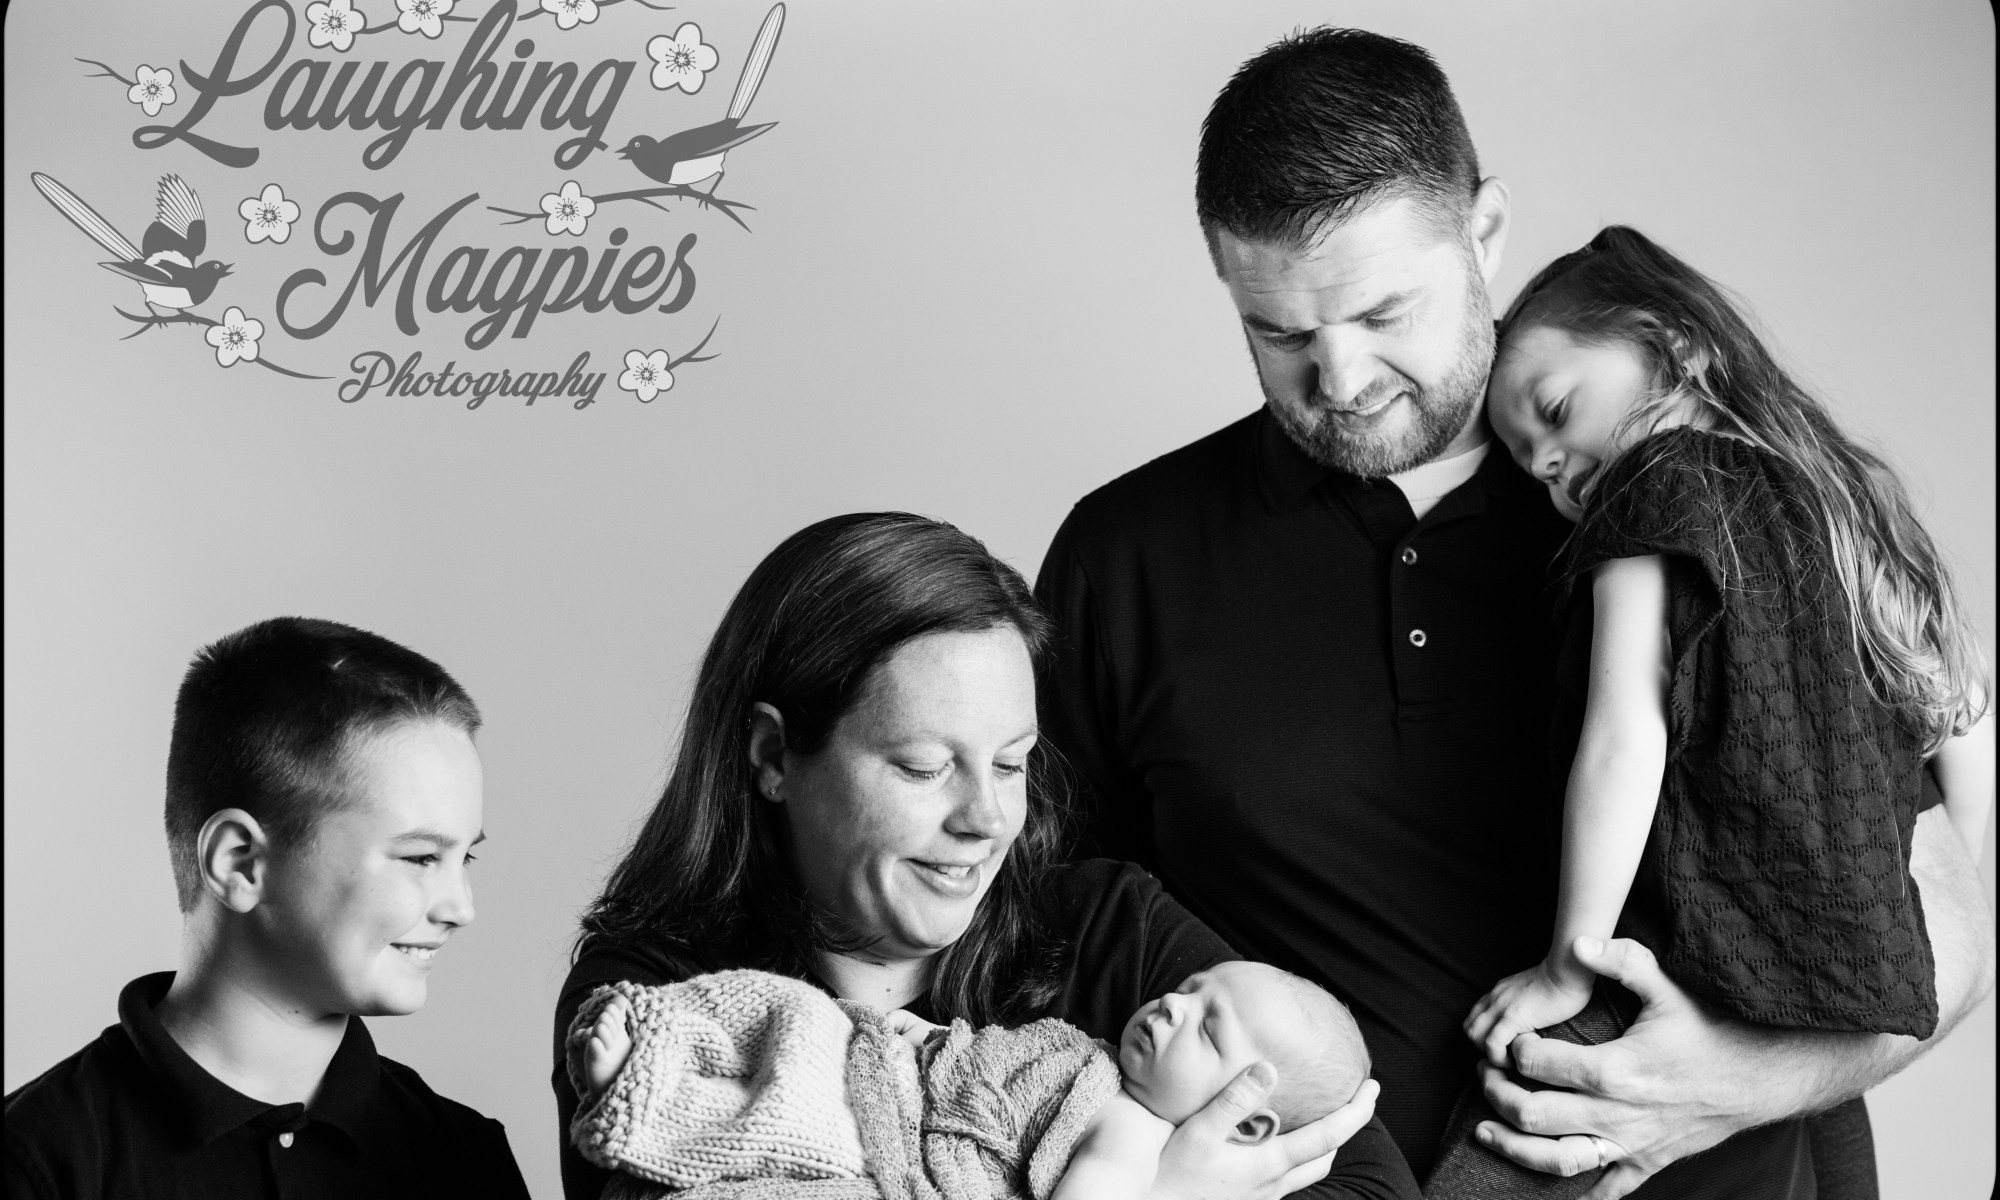 A Smiling family gathers around their precious newborn baby boy to welcome him into the family. Photographed by Heather Tristan of Laughing Magpies Photography in Greater Seattle, Washington